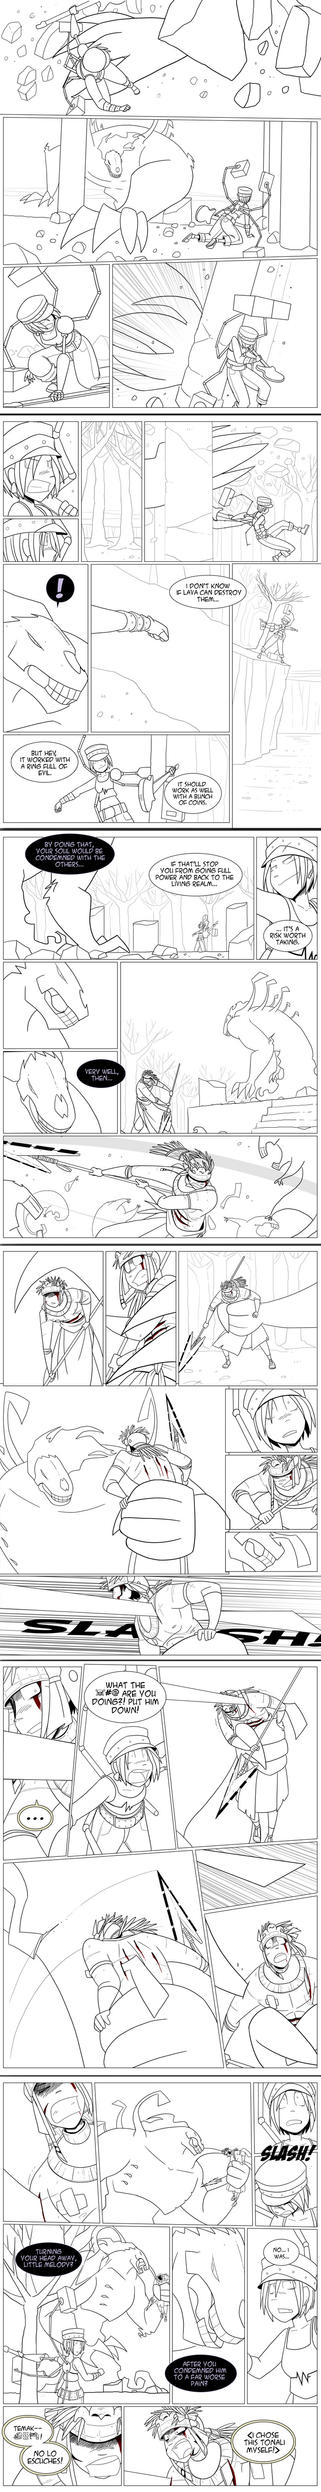 BA-Final Round Page 15 by Tickity-Tock